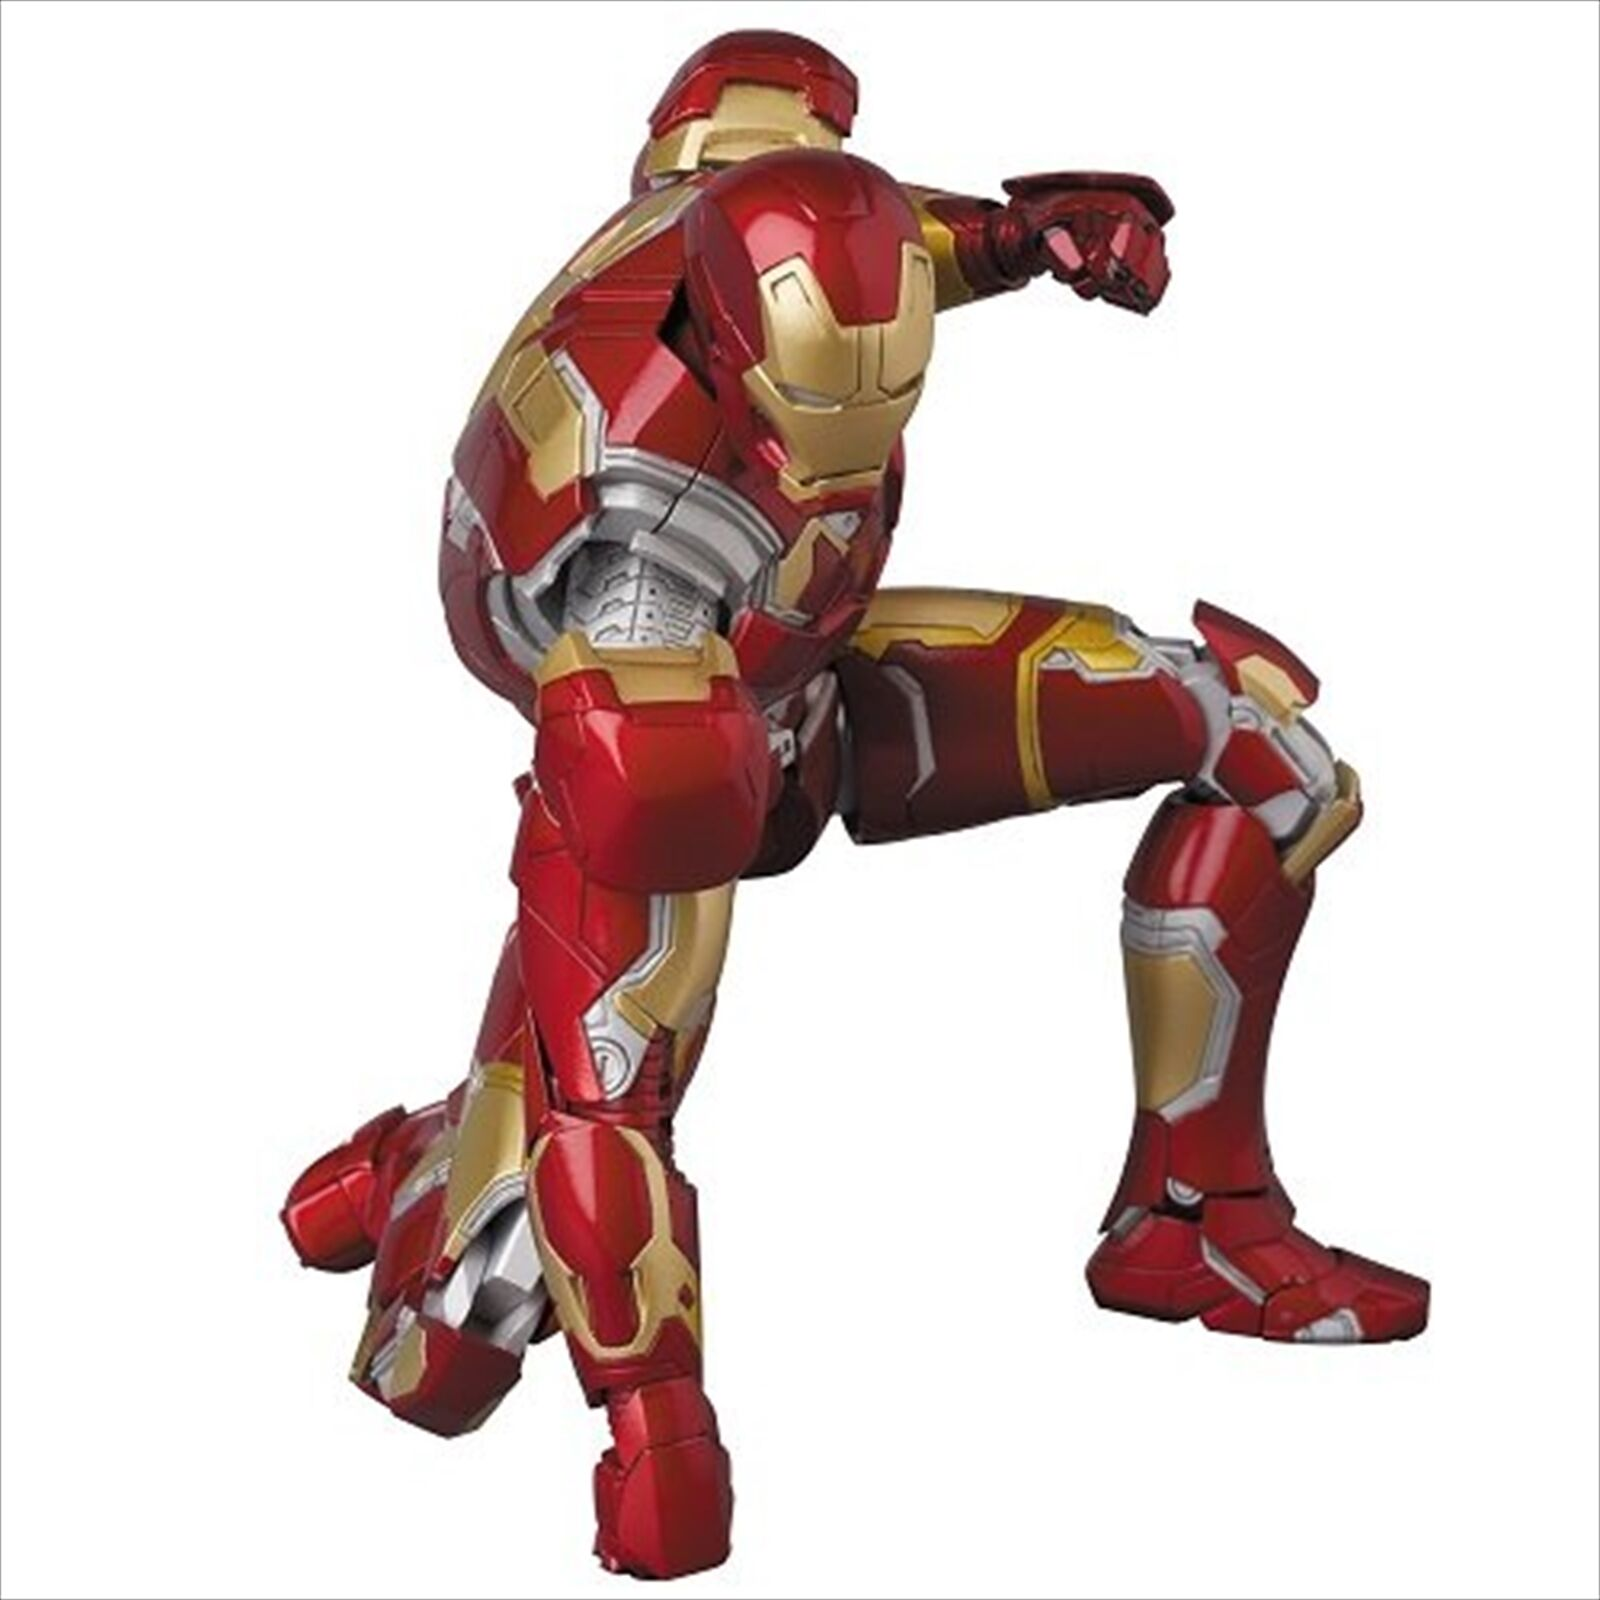 Medicom Toy MAFEX IRON MAN MARK43 Avengers Age of Ultron Action Figure